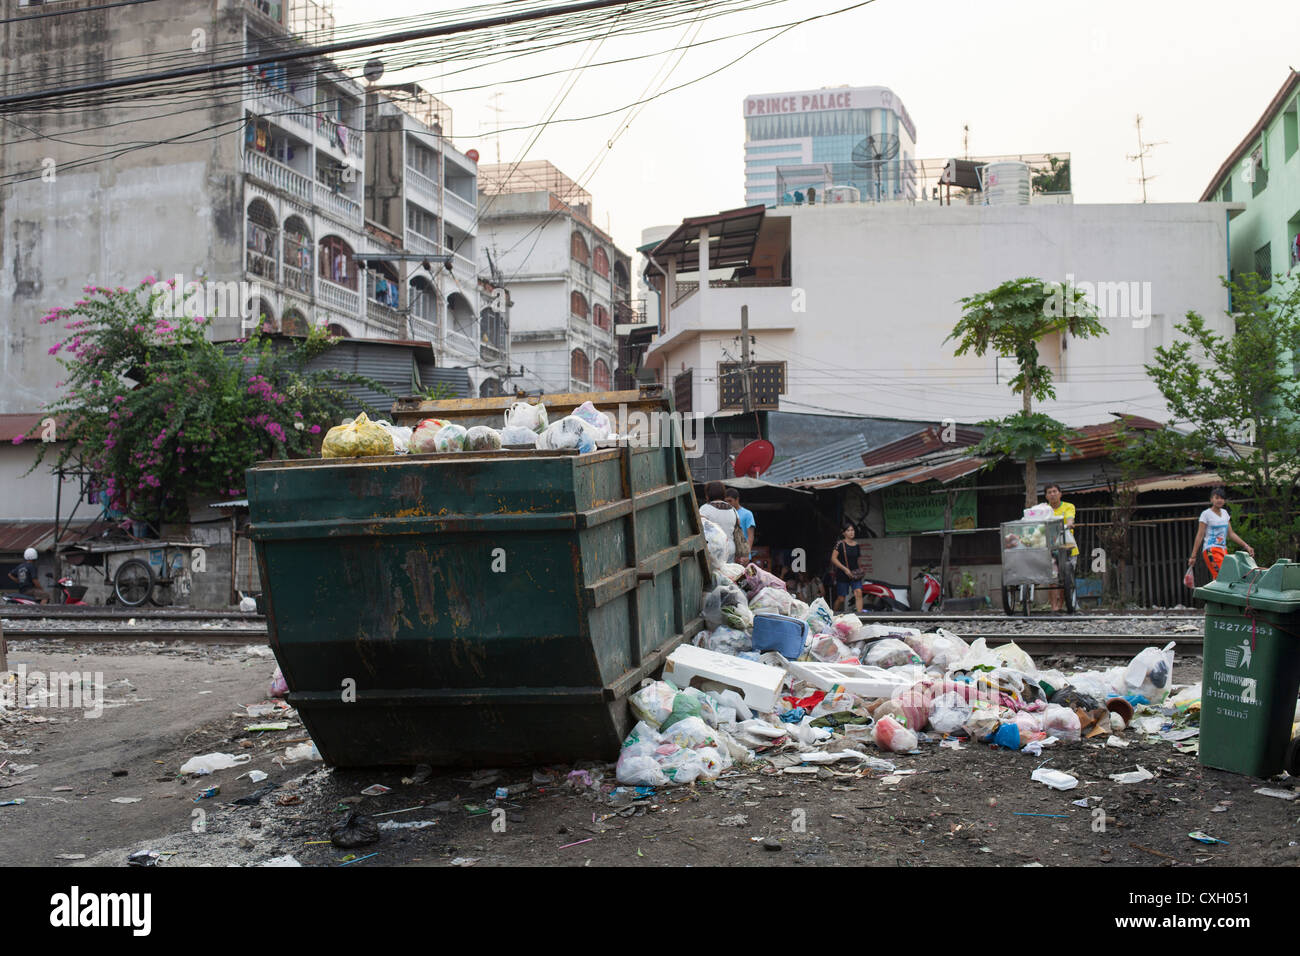 Garbage Container overflowing... - Stock Image